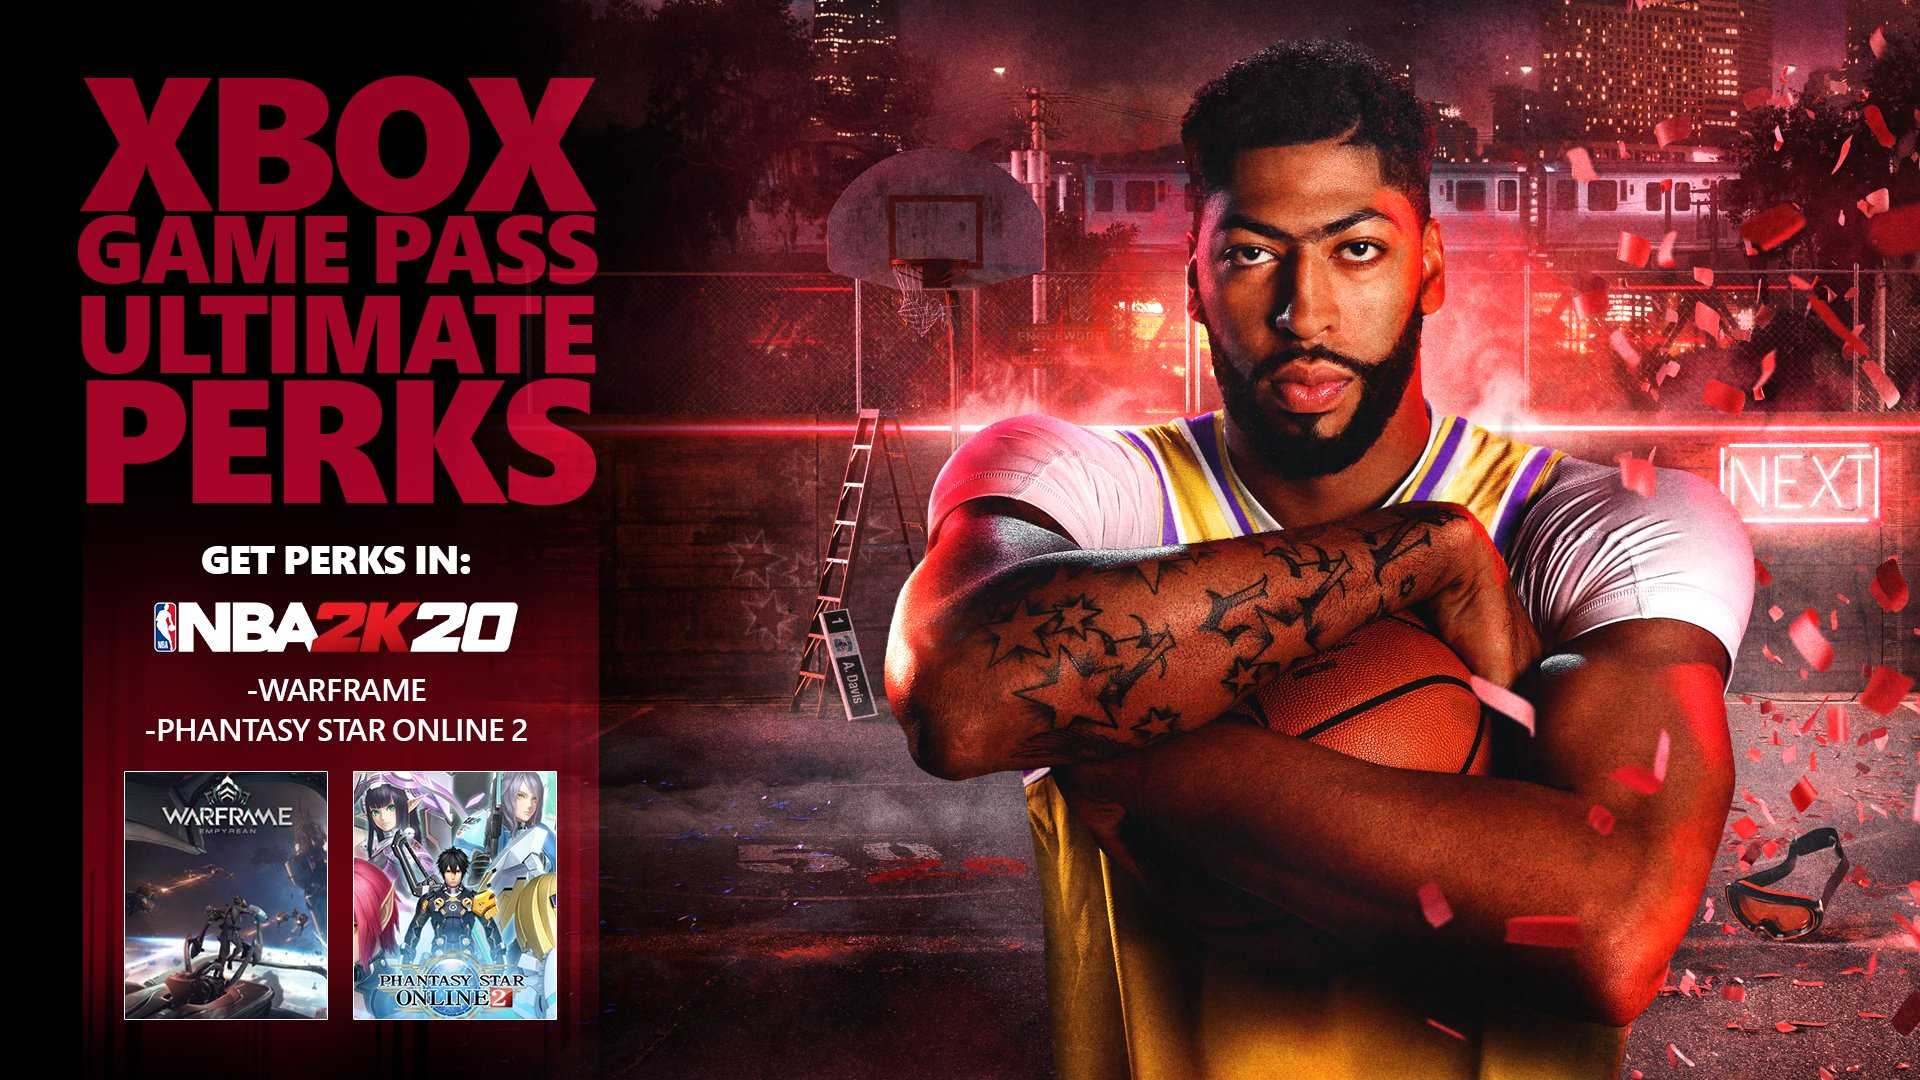 Anthony Davis poses in front of demolished basketball court, illuminated by red lights. Photo reads: XBOX GAME PASS ULTIMATE PERKS. GET PERKS IN: NBA2K20. WARFRAME. PHANTASY STAR ONLINE 2.